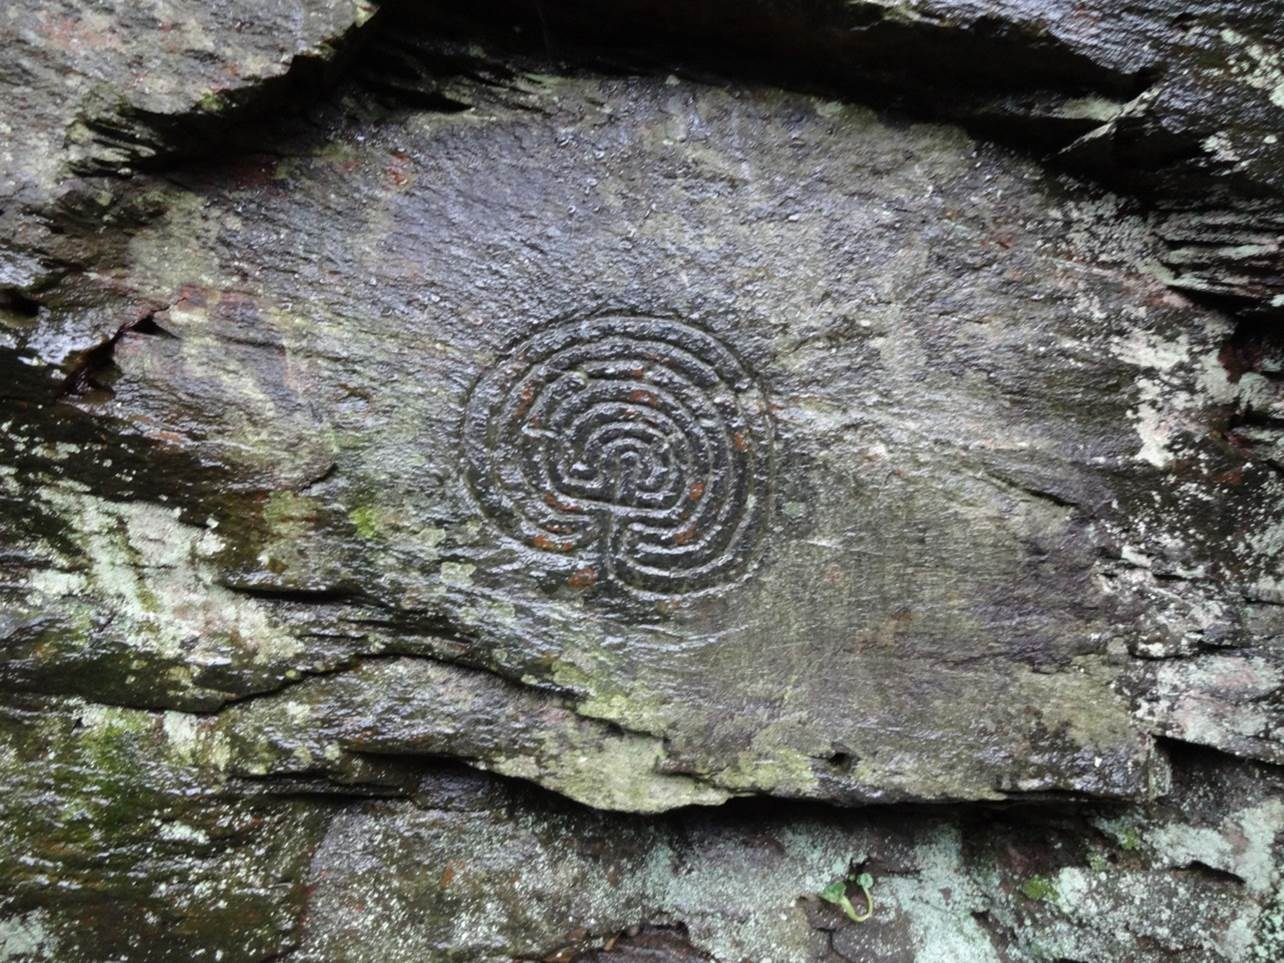 The rock art labyrinths at Rocky Valley near Tintagel, which in part inspired Kerdroya